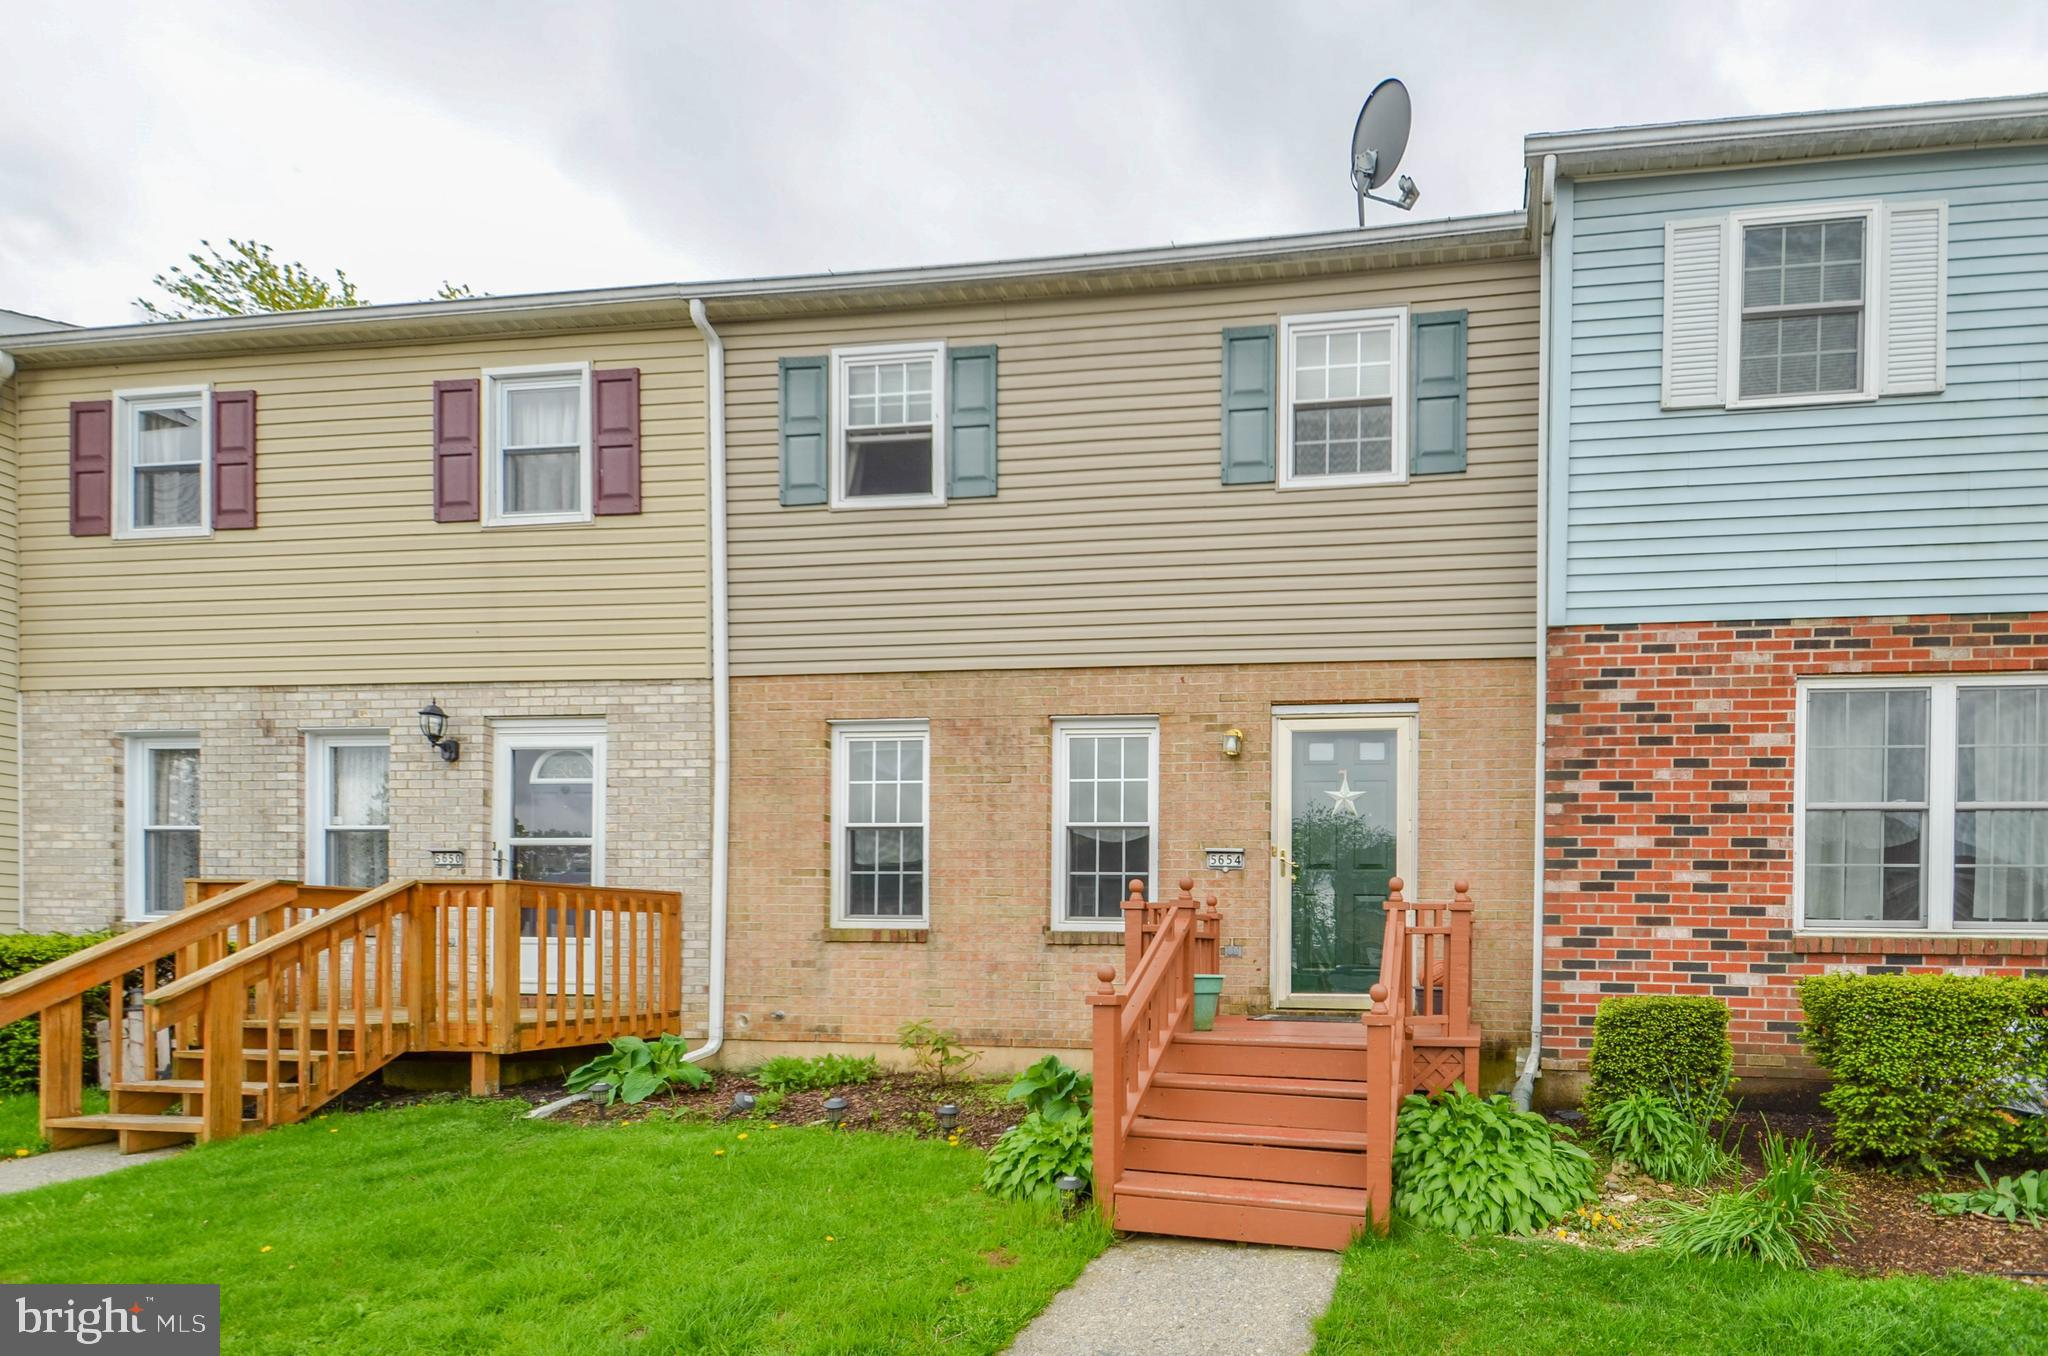 5654 WOOD LANE, ALLENTOWN, PA 18106